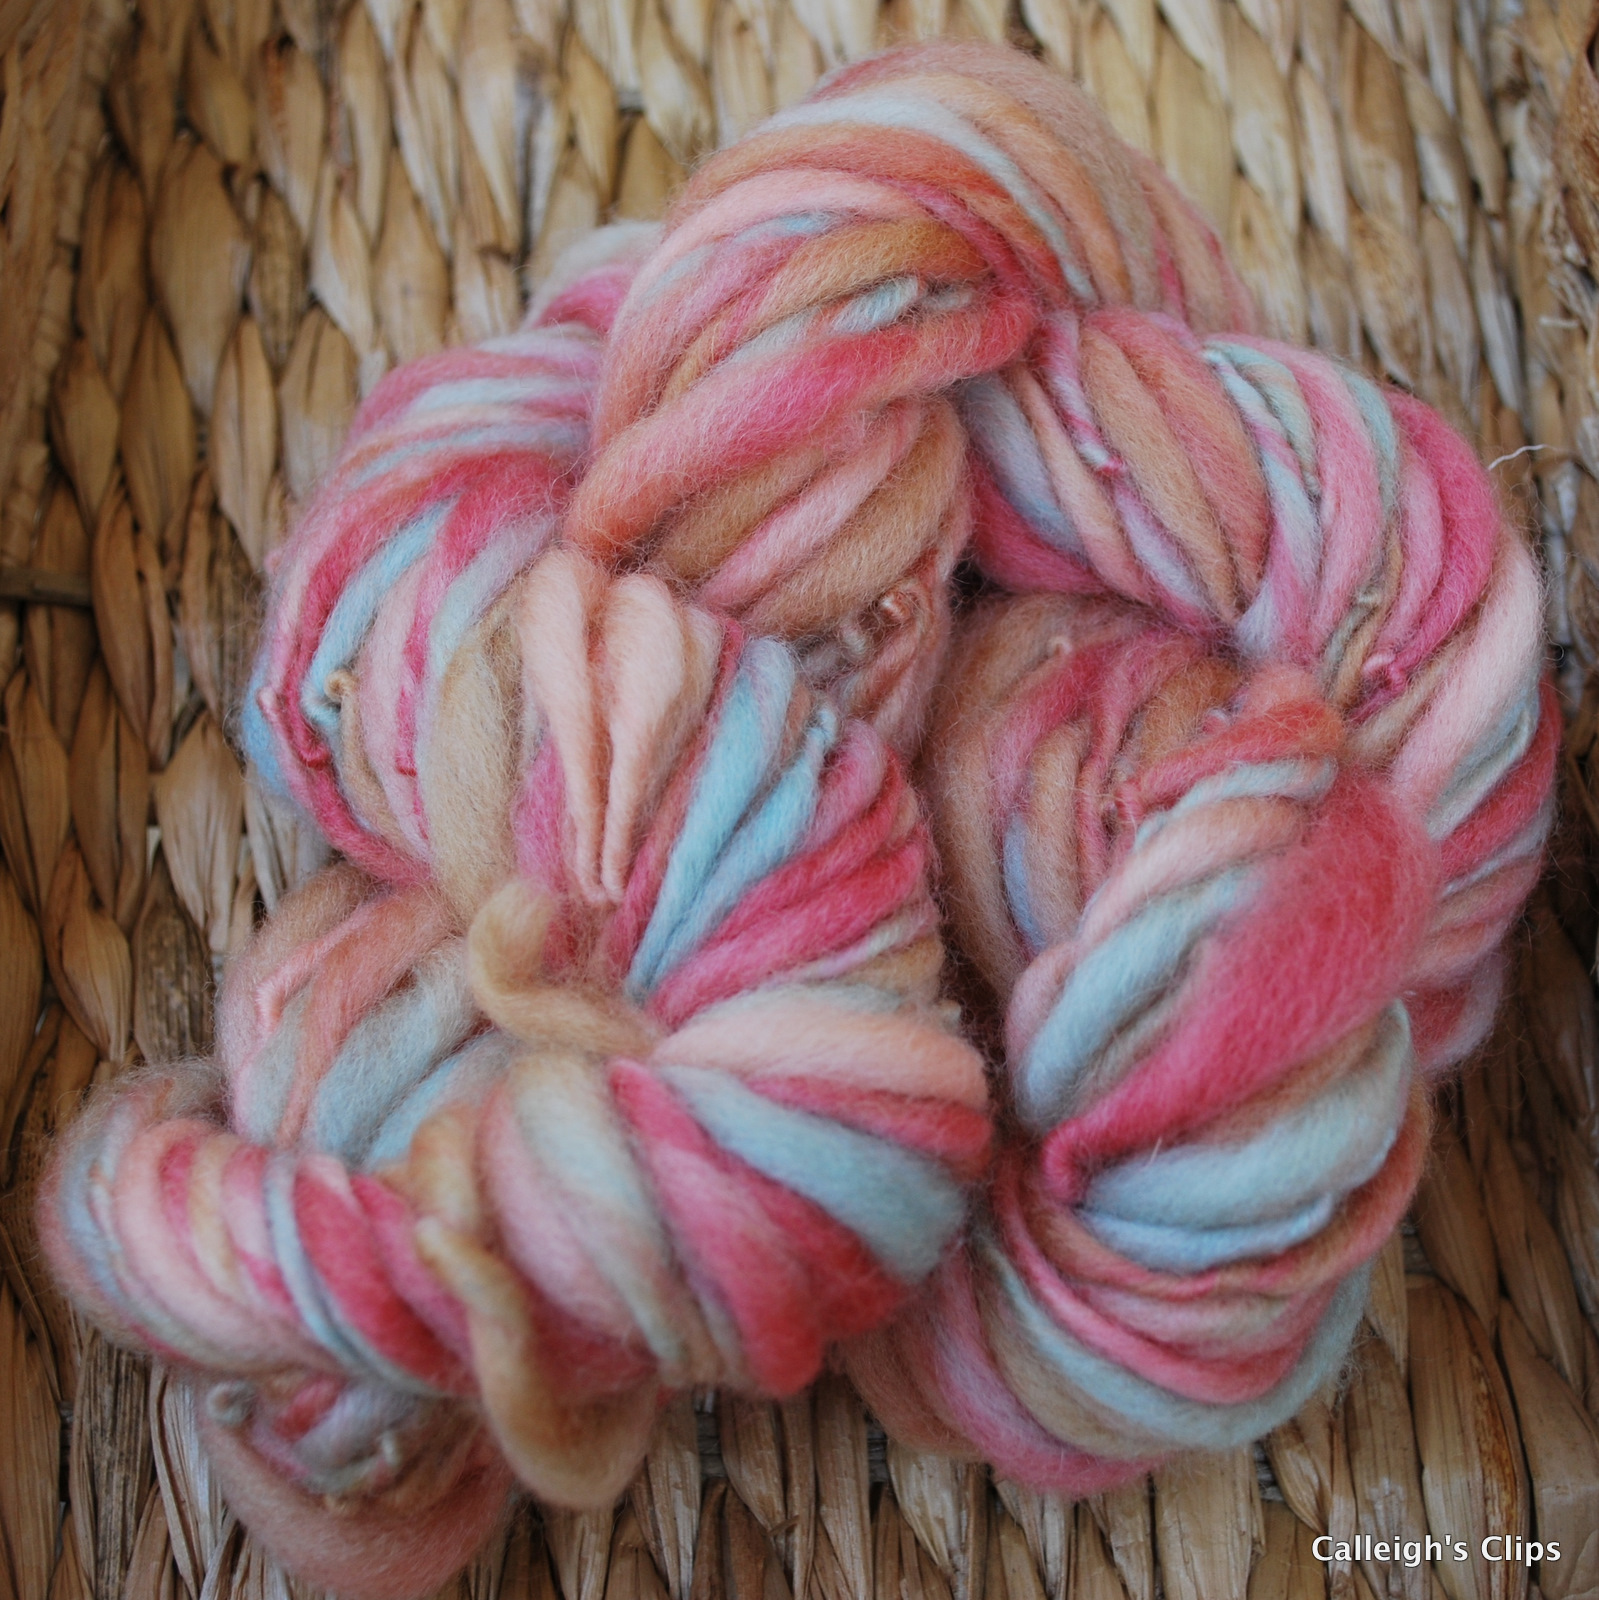 Free Crochet Patterns For Thin Yarn : Calleighs Clips & Crochet Creations: Thick and Thin Yarn